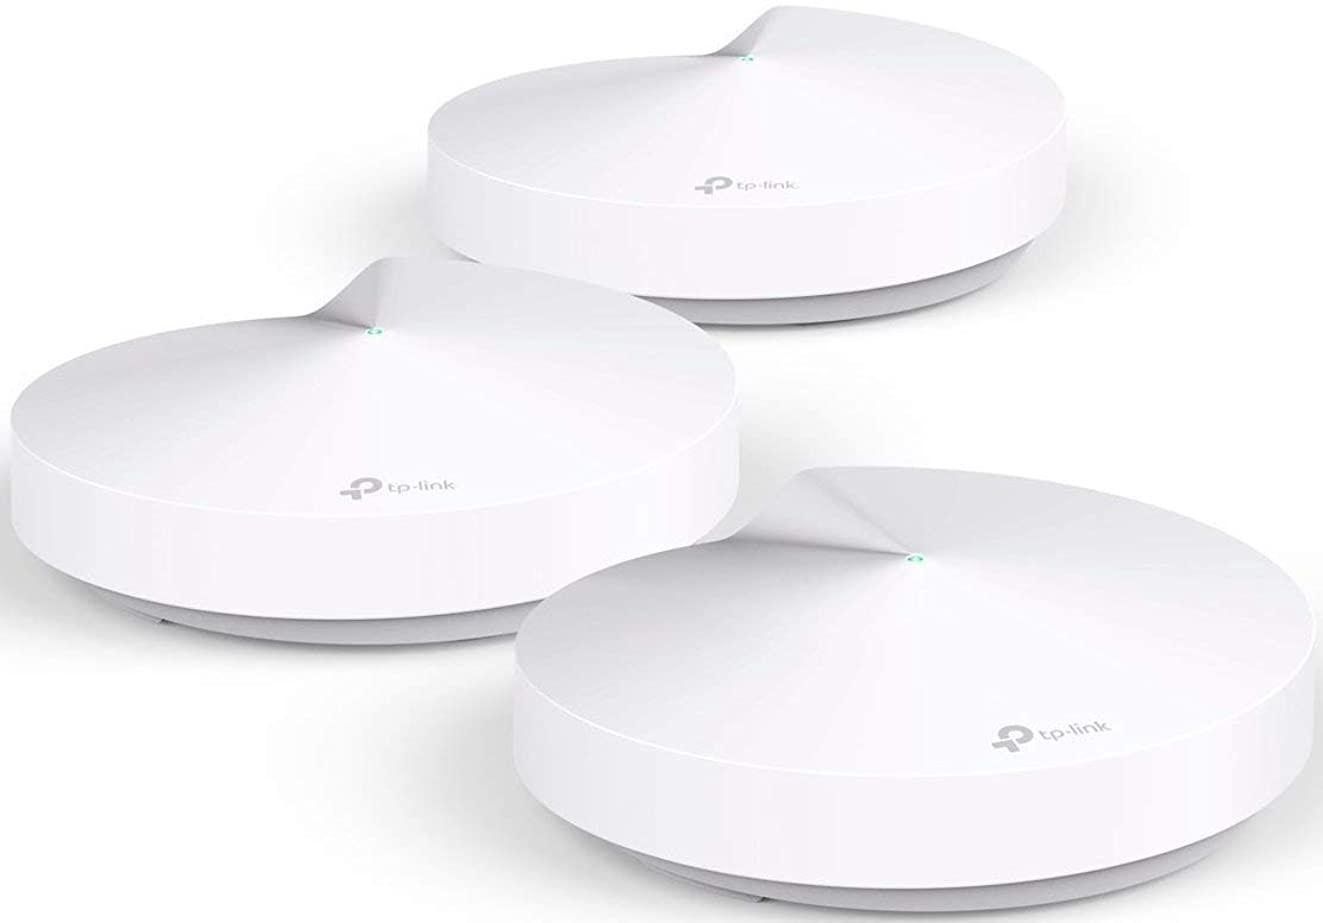 TP-Link Deco Whole Home Mesh WiFi System – Homecare Support, Seamless Roaming, Dynamic Backhaul, Adaptive Routing, Works with Amazon Alexa, Up to 5,500 sq. ft. Coverage (M5)